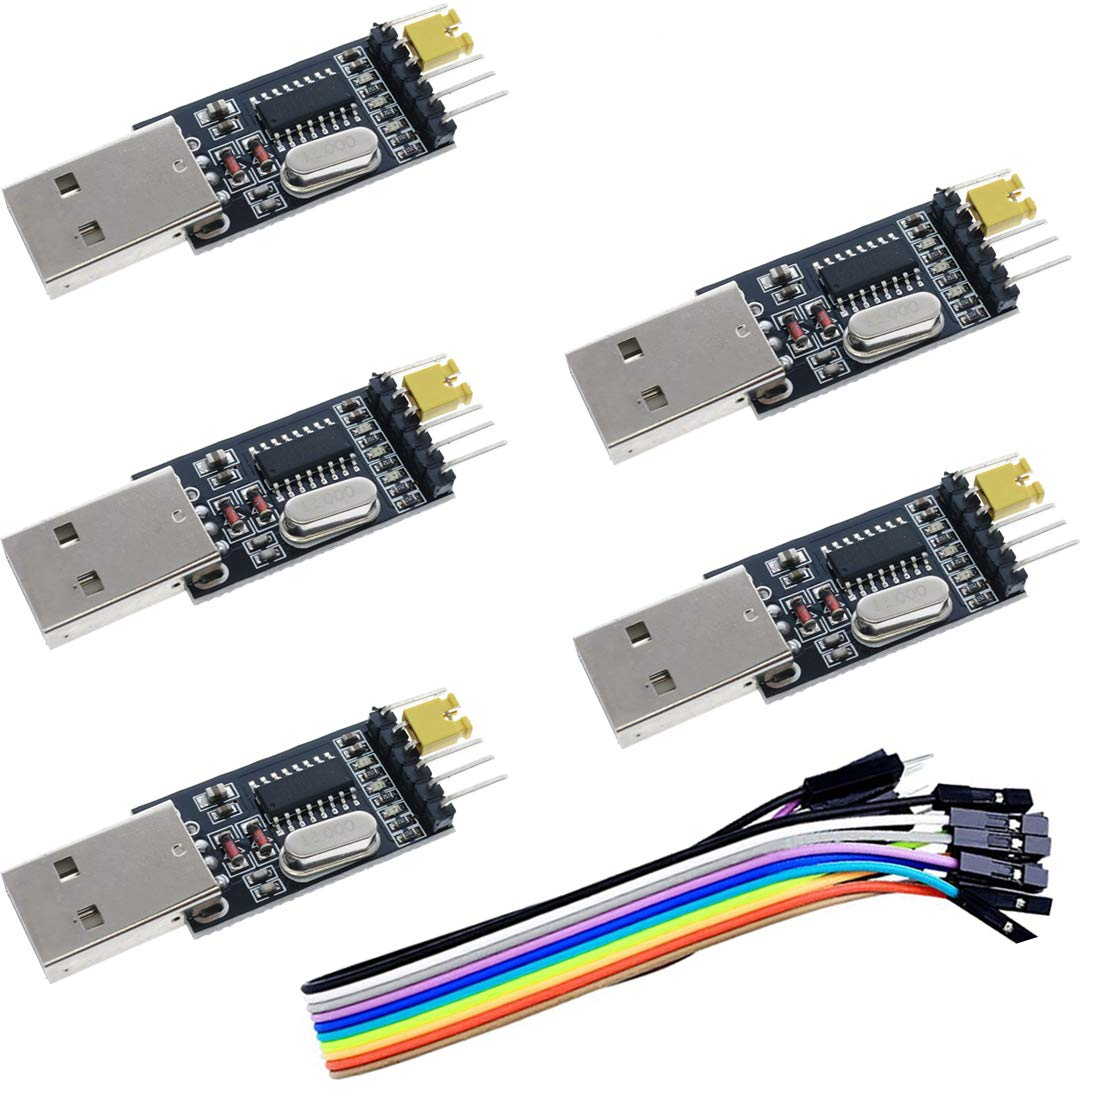 USB TO SERIAL CH340 DRIVERS DOWNLOAD FREE